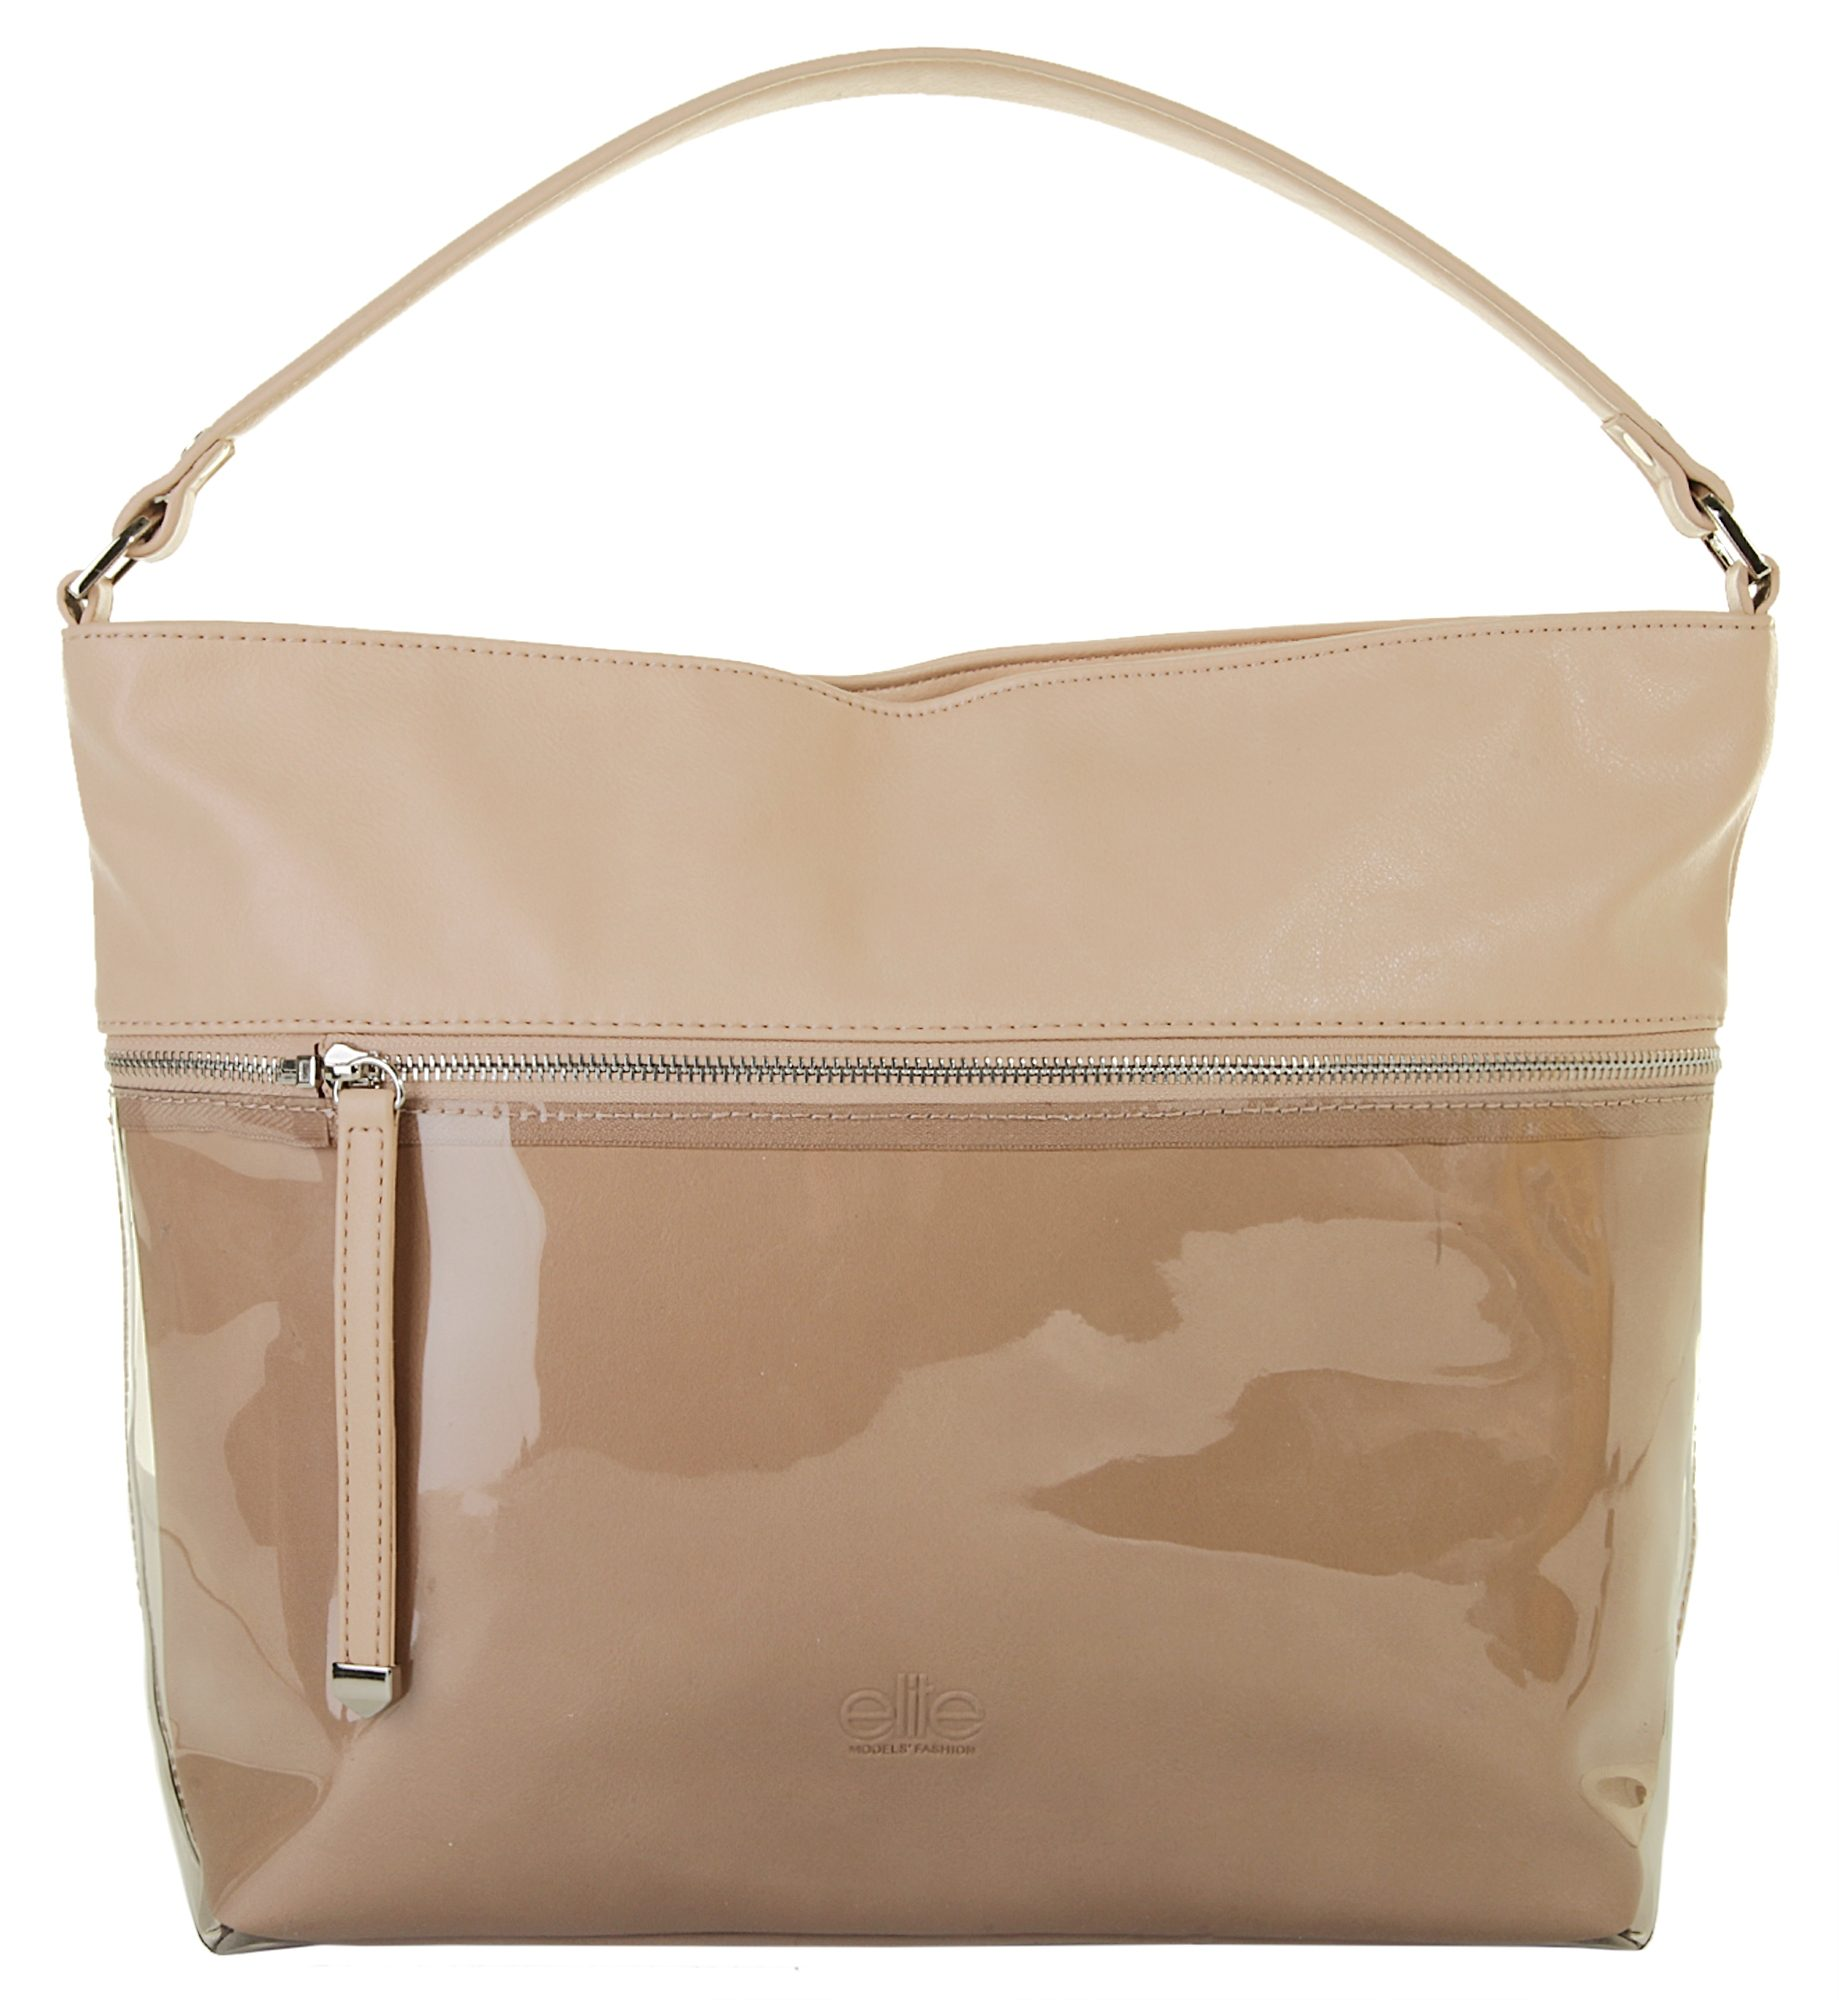 ELITE MODEN Damen Handtasche »Matty«